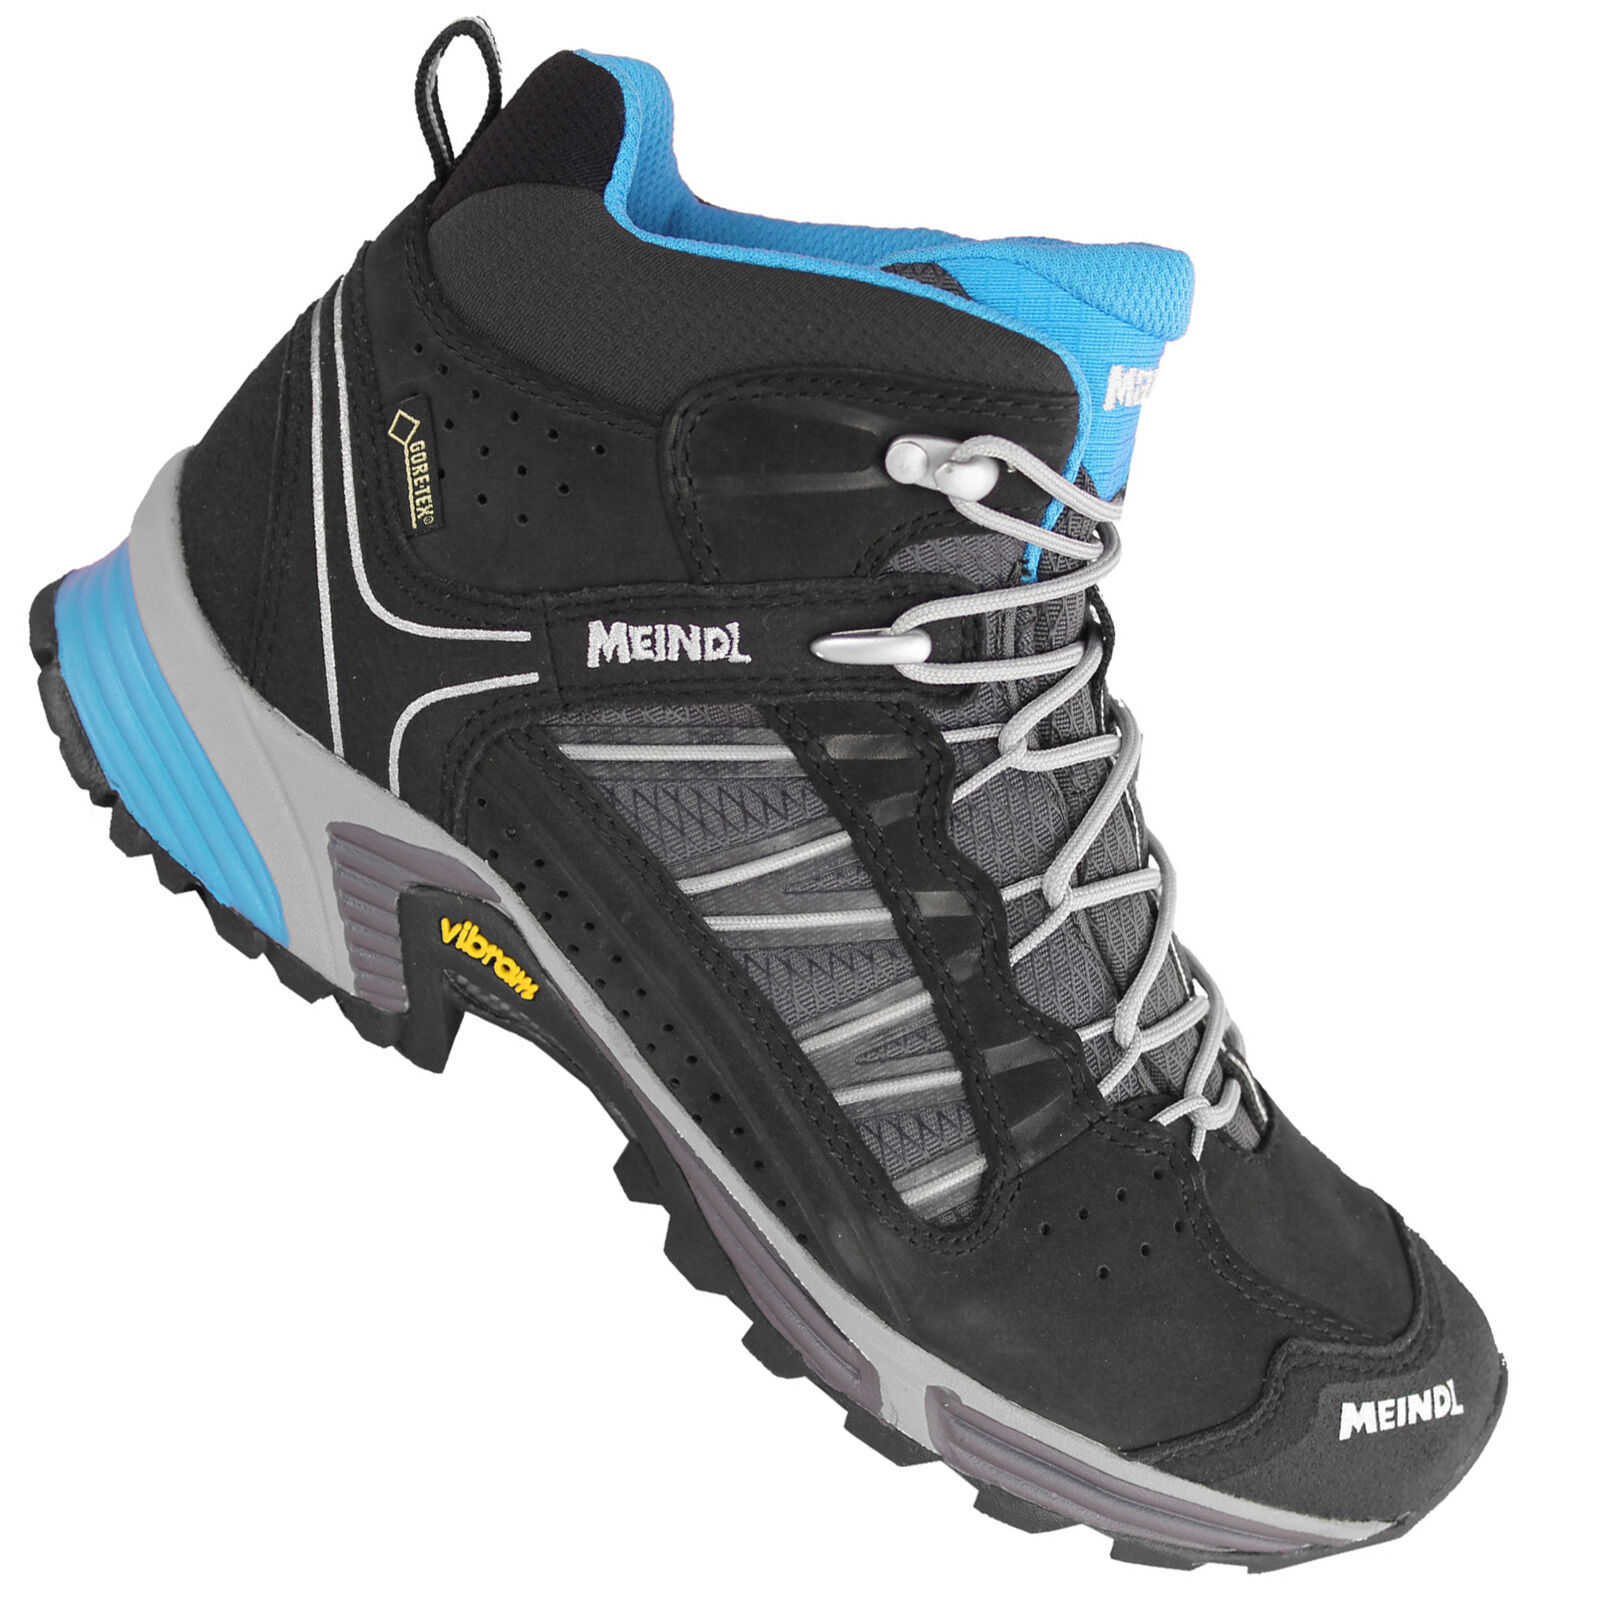 Meindl SX GTX Ladies Hiking shoes Trekking shoes  Outdoor shoes Waterproof New  all products get up to 34% off